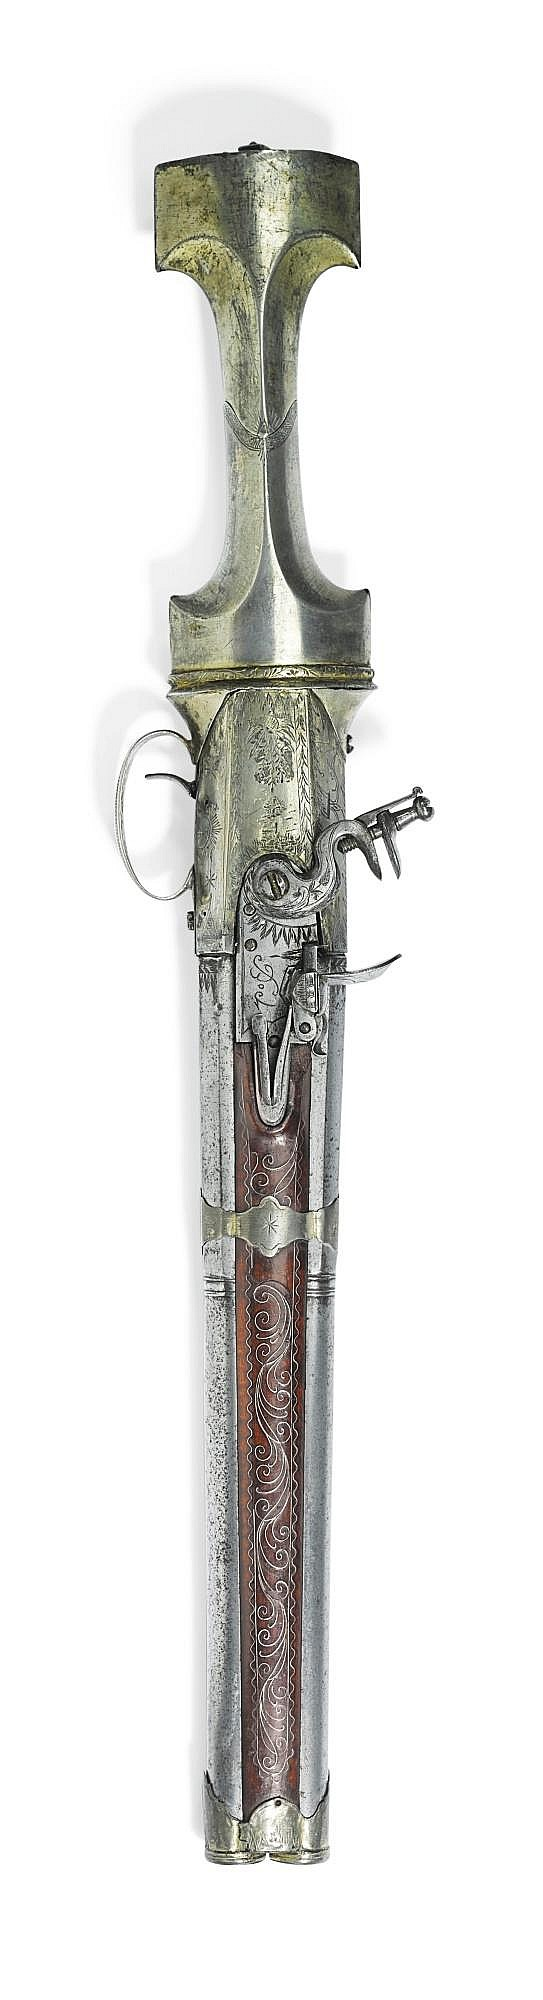 A RARE OTTOMAN DOUBLE-BARRELLED FLINTLOCK PISTOL WITH CONCEALED DAGGER, TURKEY, 19TH CENTURY |